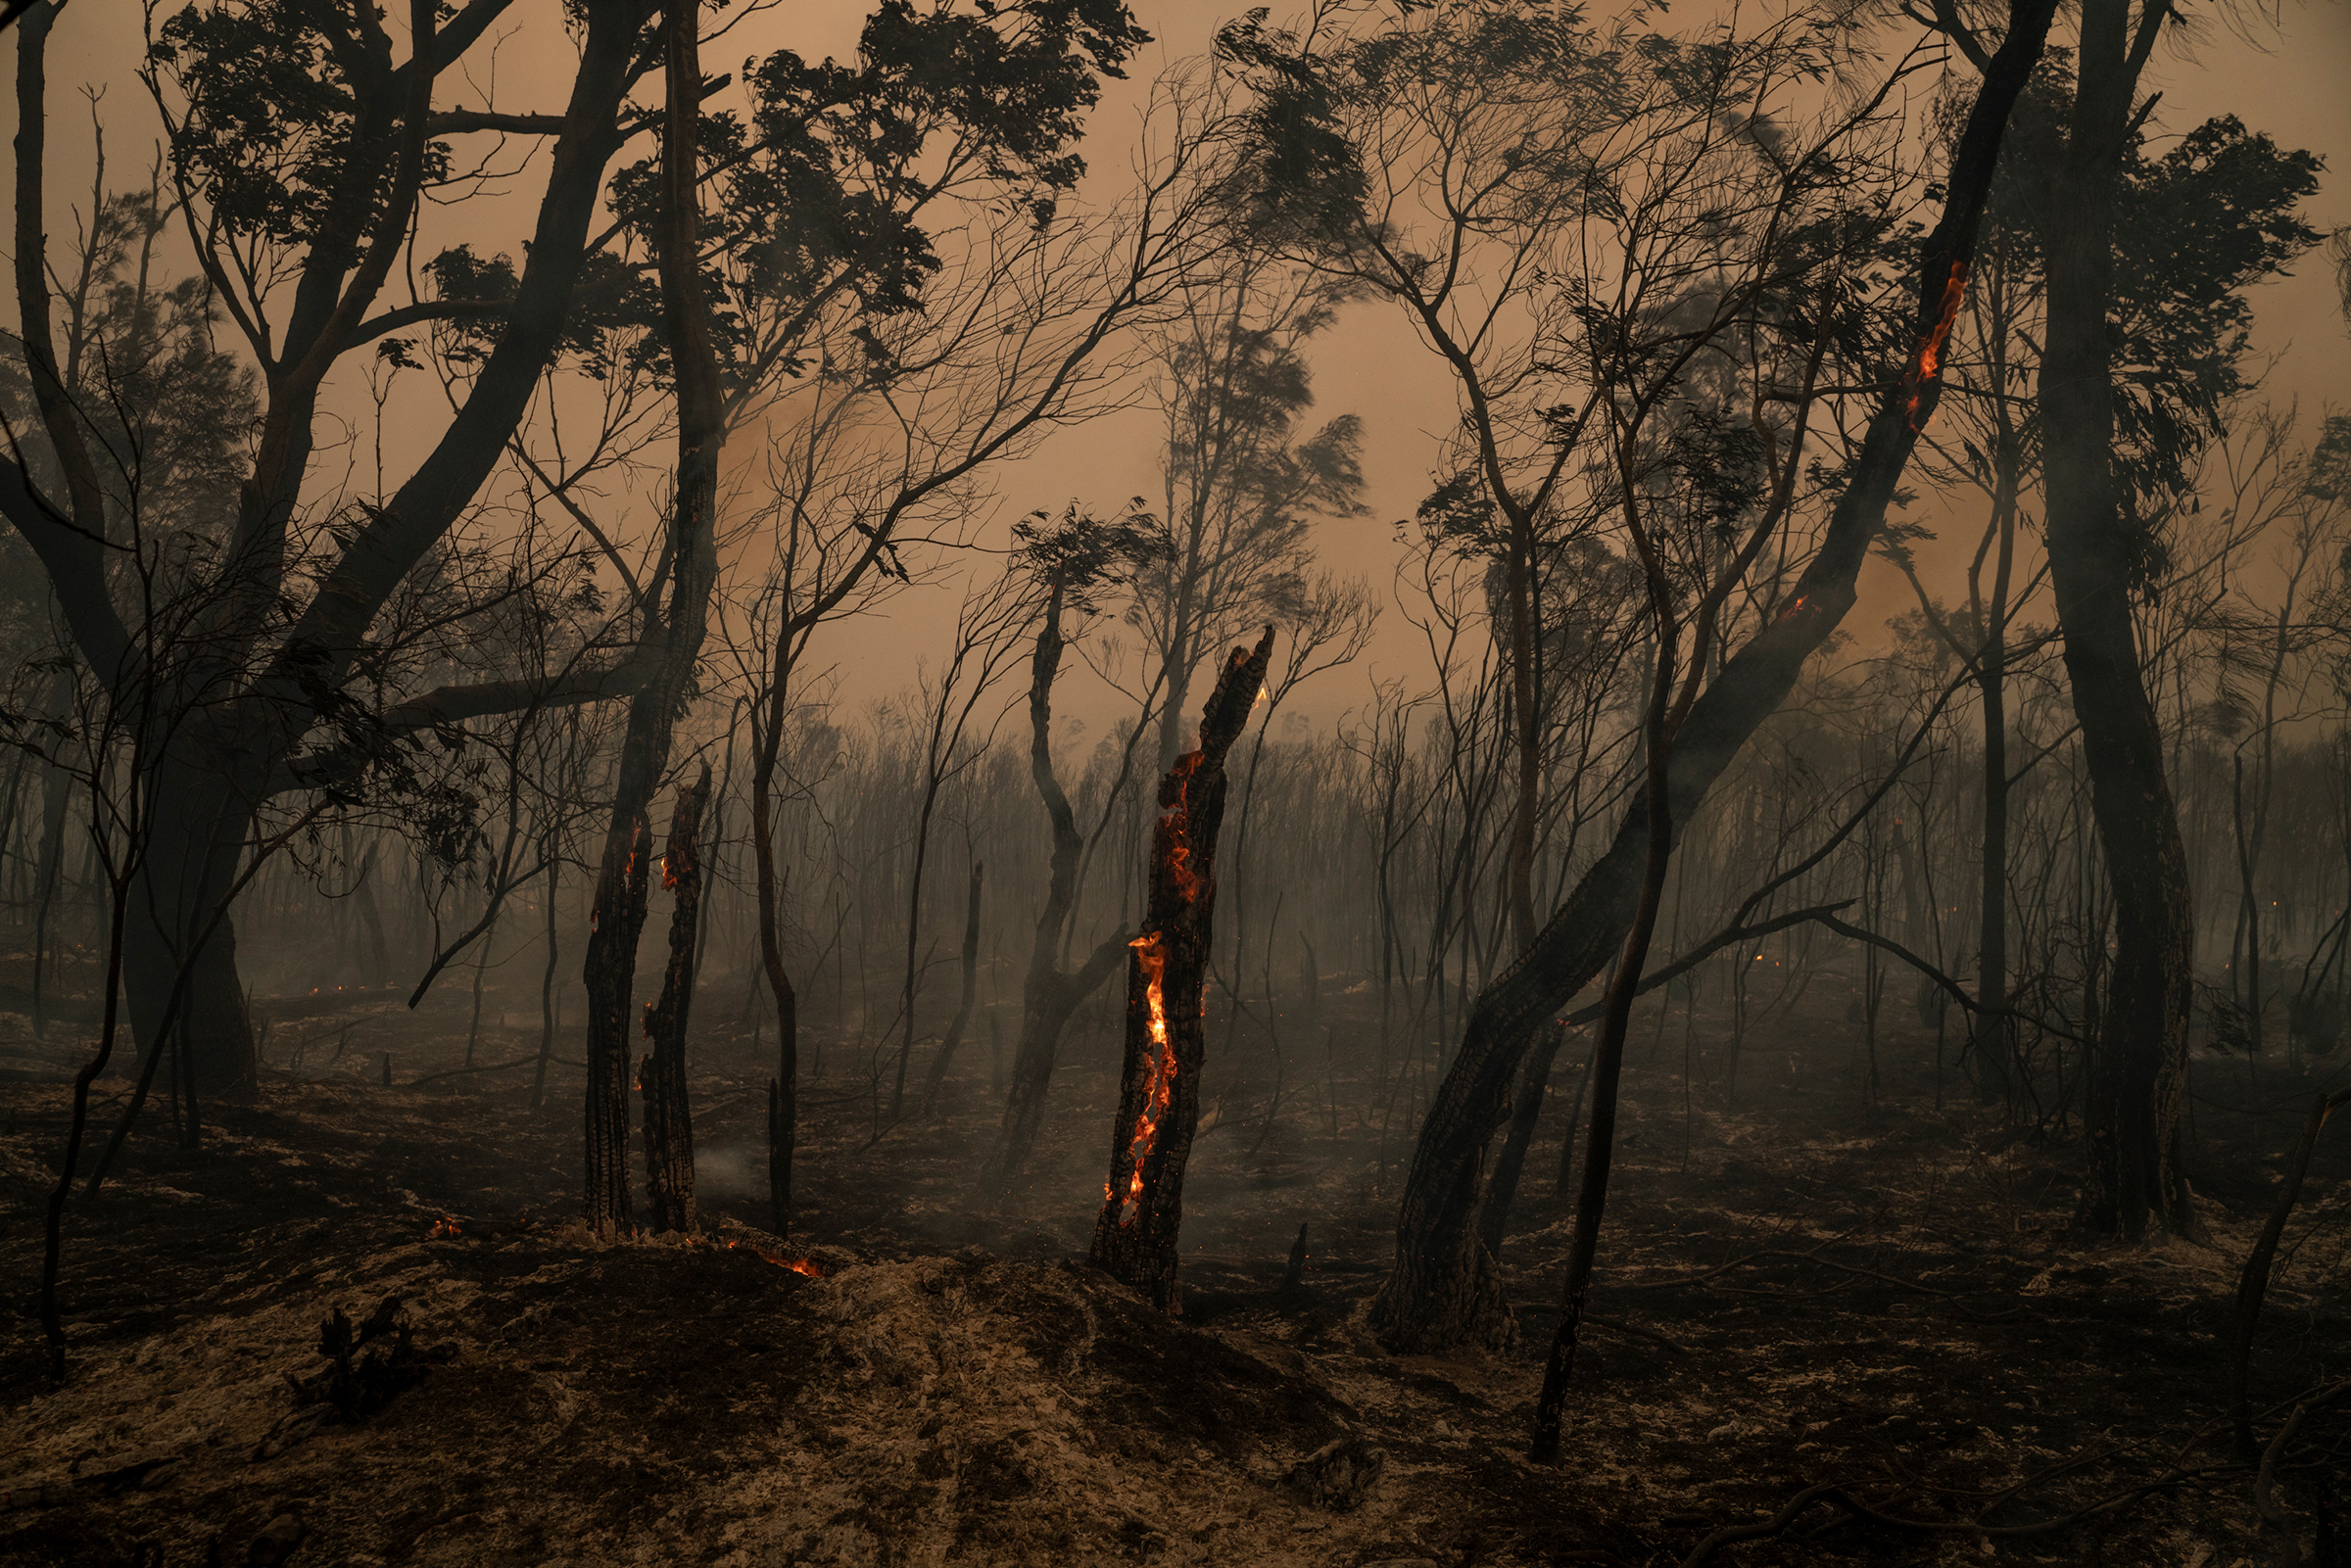 Members of the Rural Fire Service back-burn bushland near Burrill Lake in New South Wales, Australia, on Jan. 4, 2020.